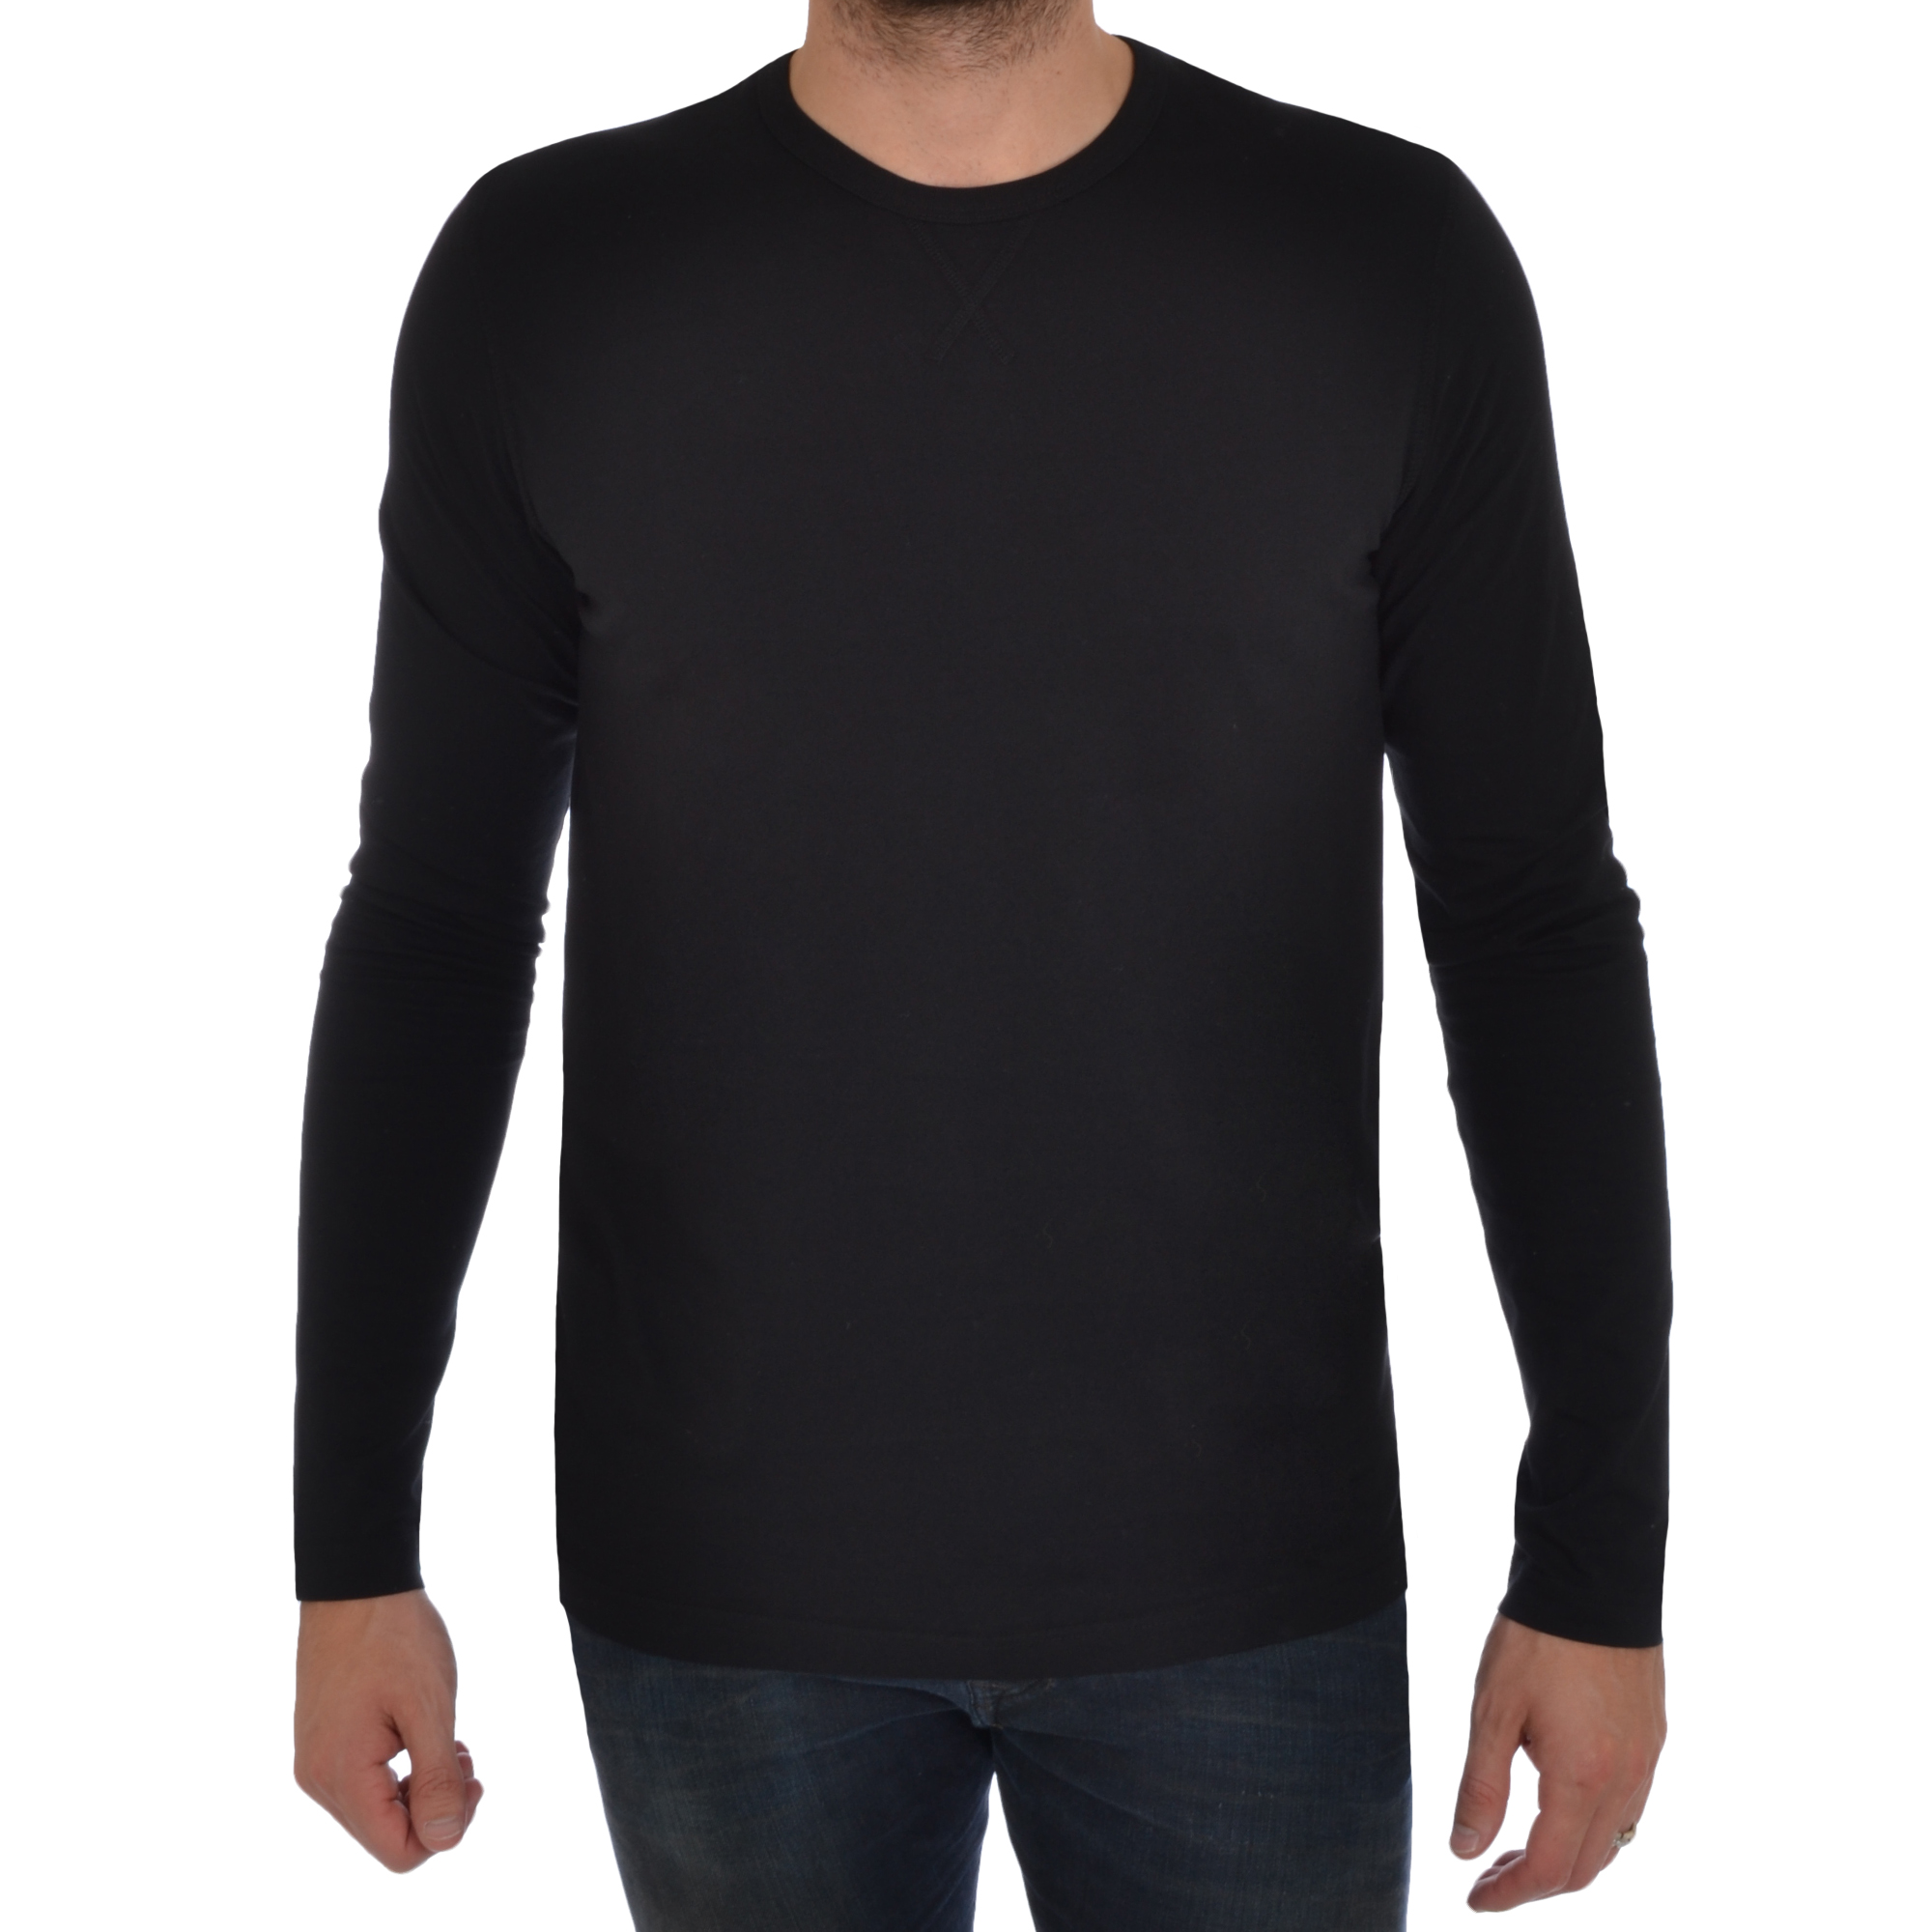 brave soul mens long sleeve t shirt plain crew neck casual